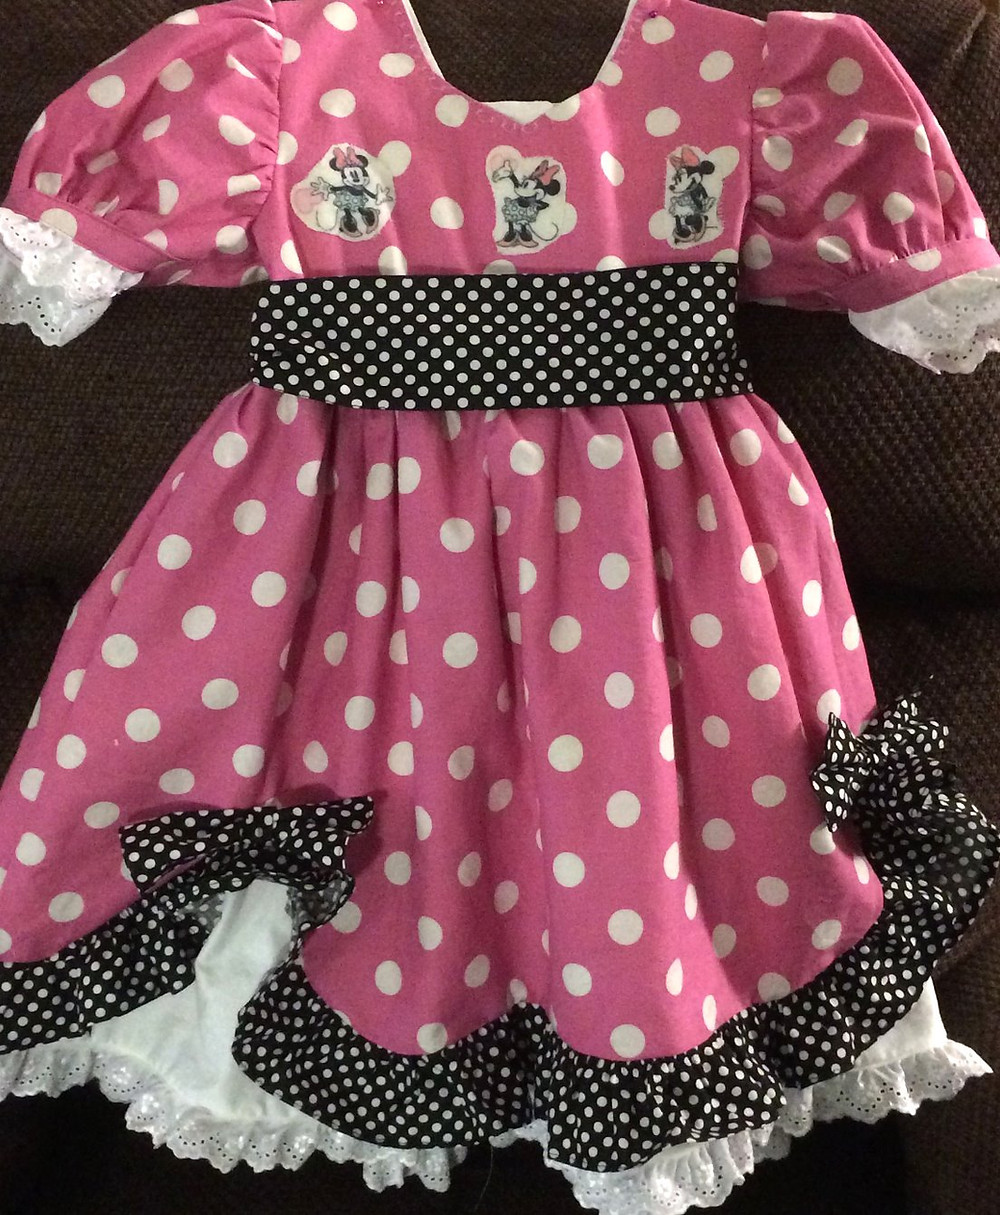 The Minnie Mouse Dress!!